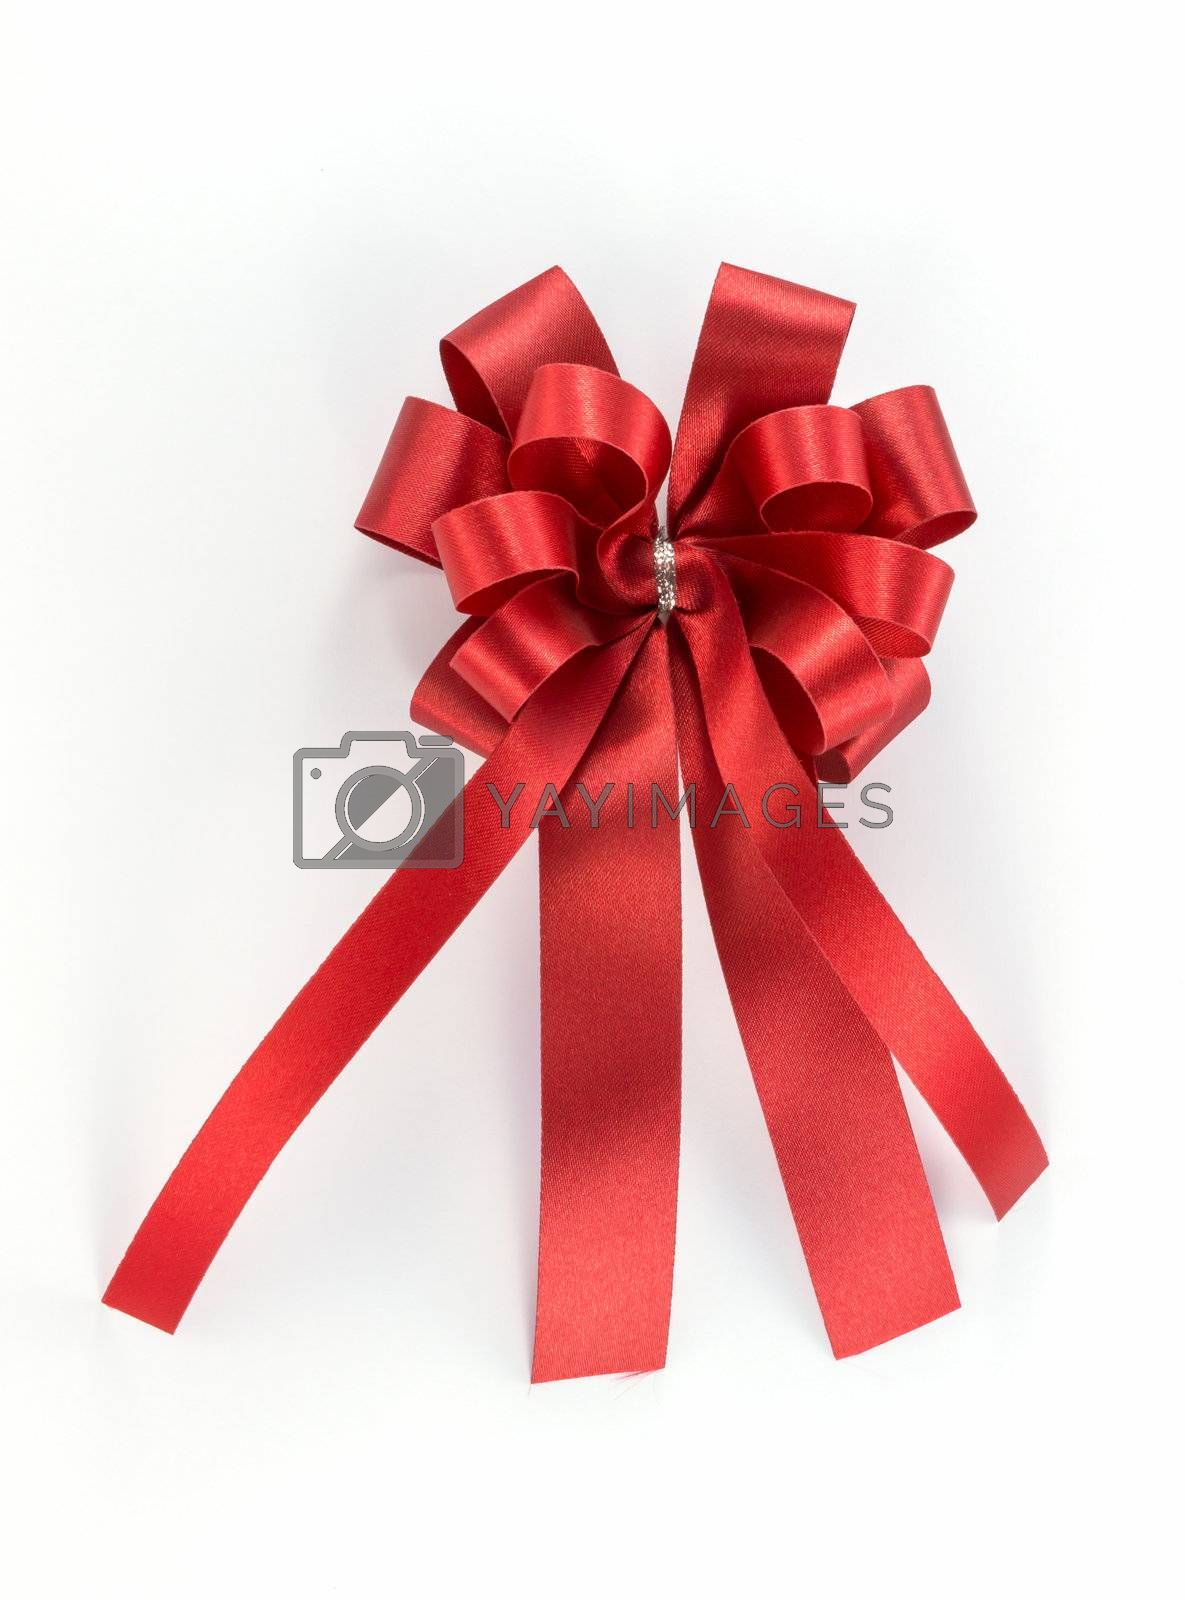 The bow make of red ribbon look luxury and beautiful